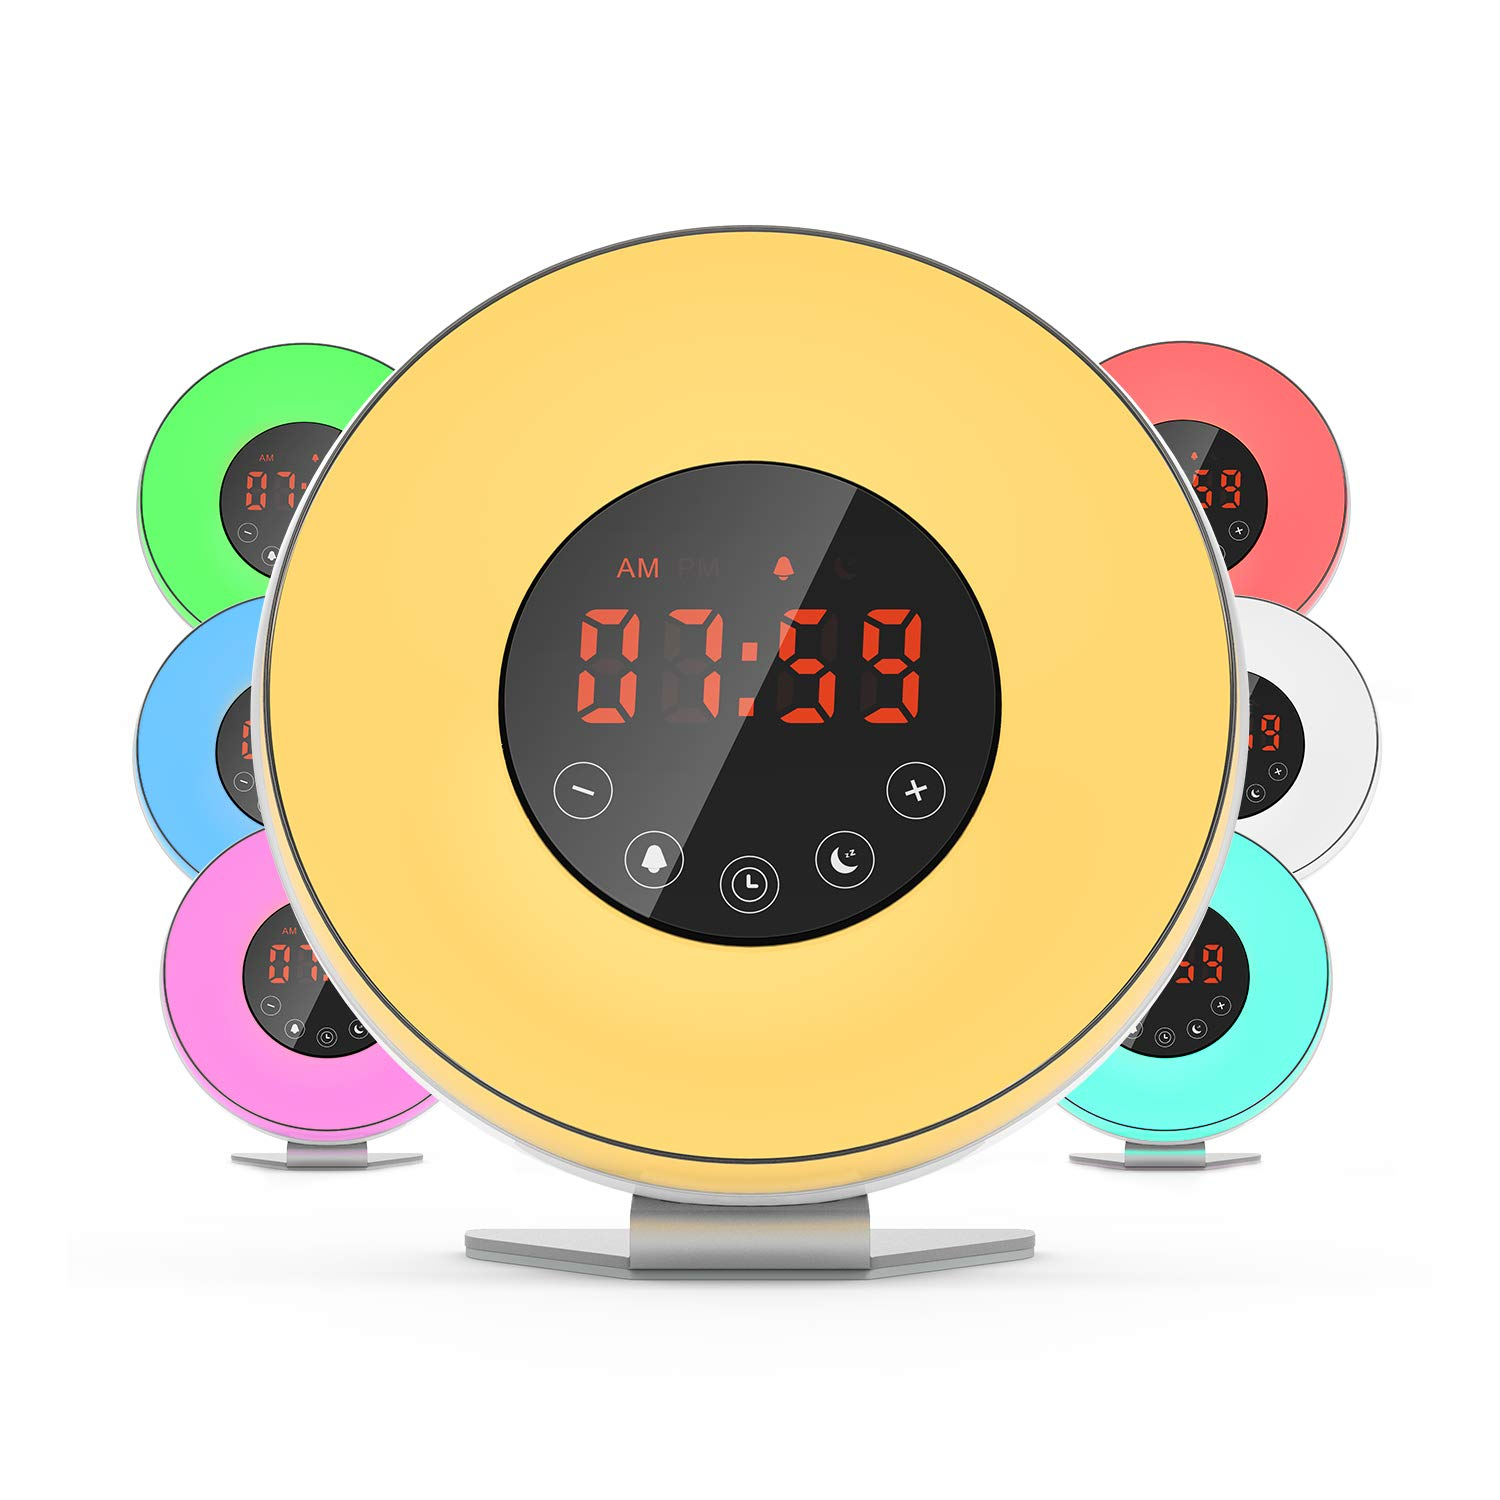 Dr.Meter Sunrise Alarm Clock - Digital LED Night Light Clock with 7 Color Switch and FM Radio for Bedrooms Colorful (JW-6639F)